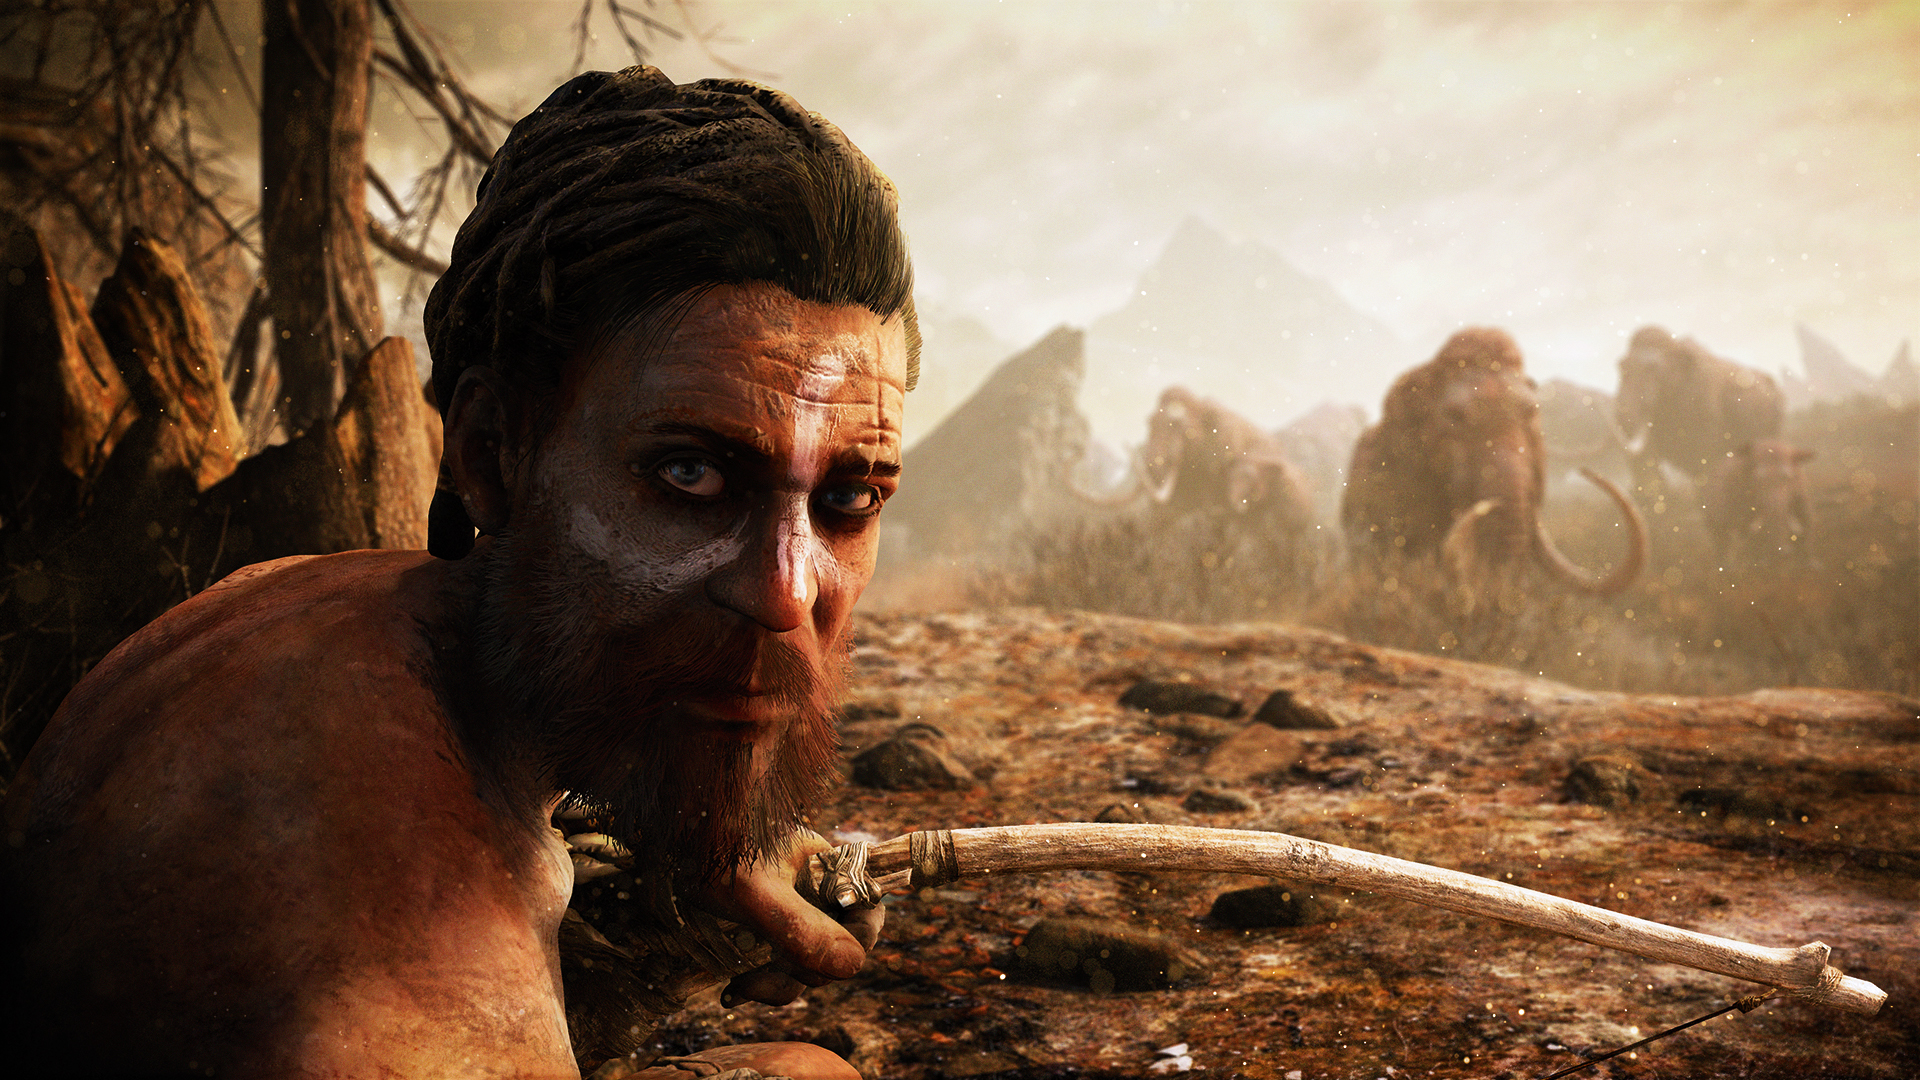 Media asset (photo, screenshot, or image in full size) related to contents posted at 3dfxzone.it | Image Name: 3D-Analyze_Far-Cry-Primal_Hero.jpg